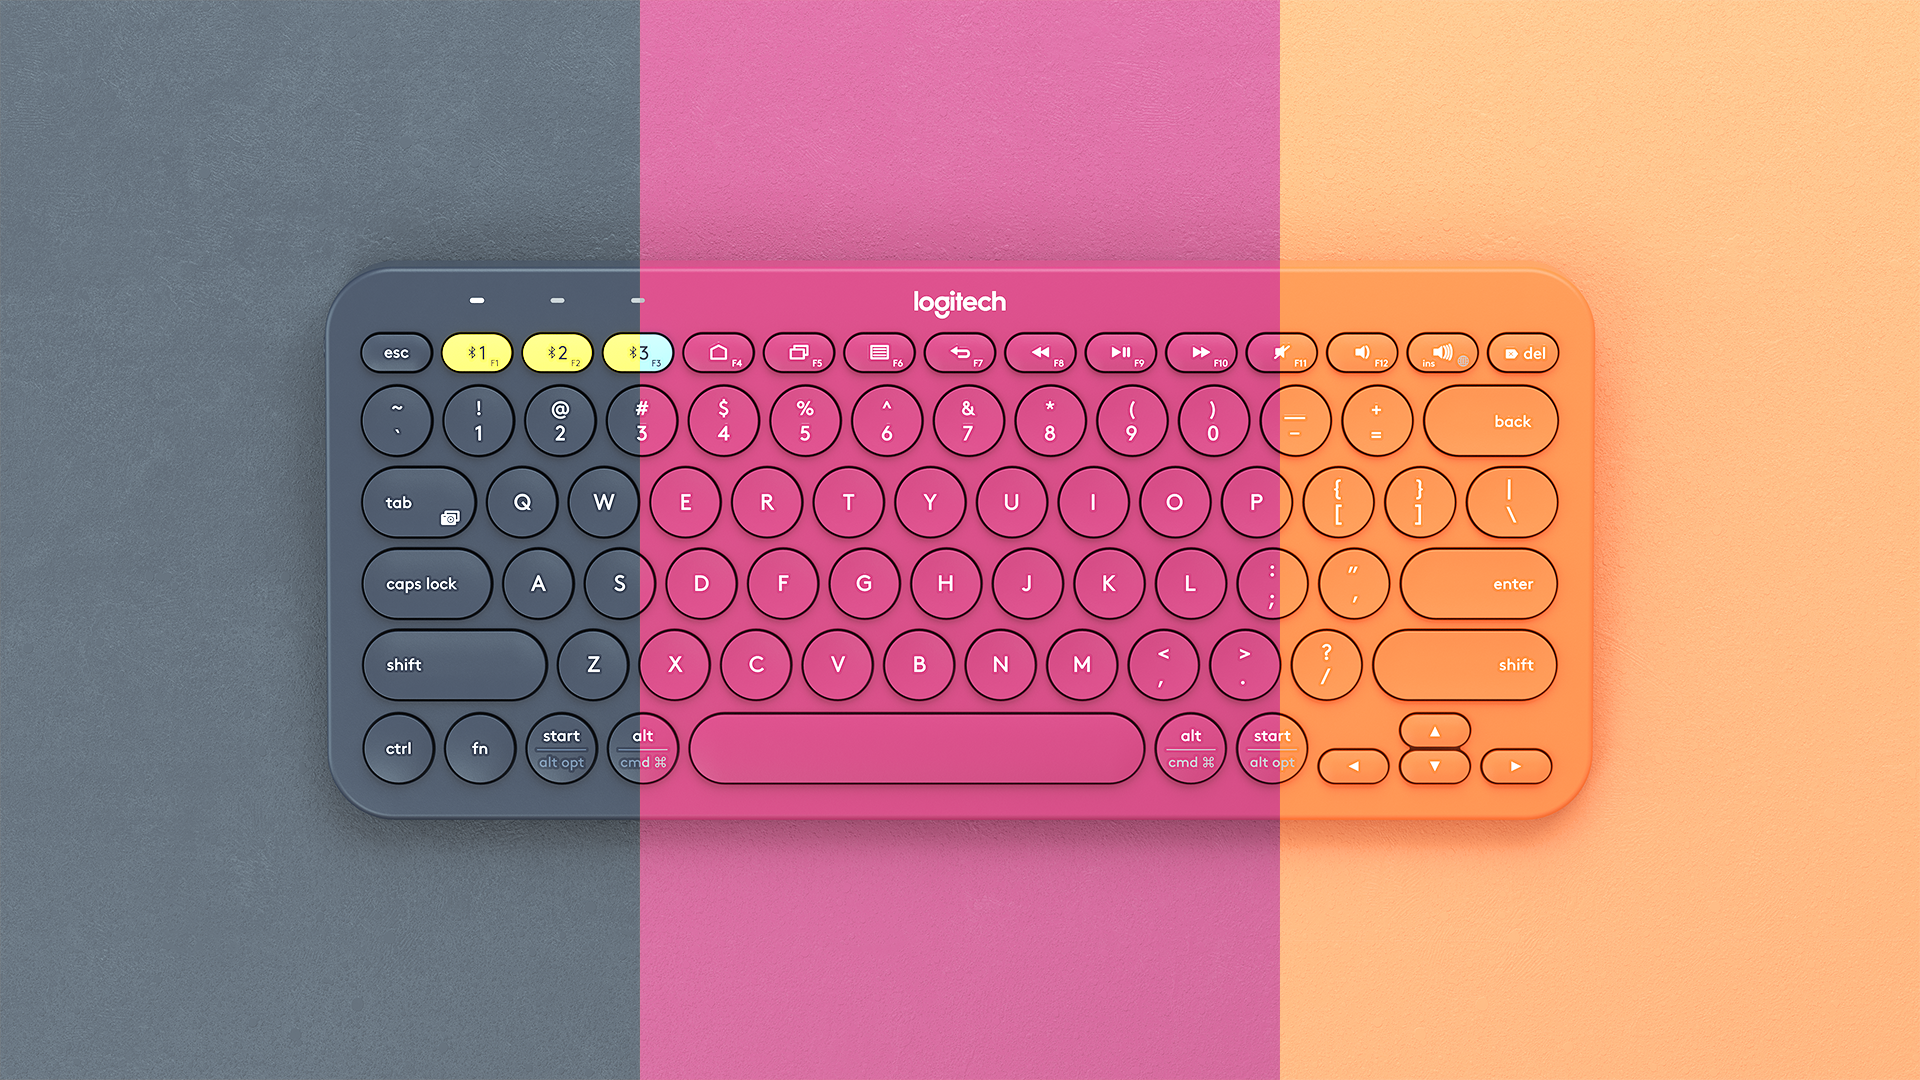 Logitech K380 on Behance | Industrial design | Logitech